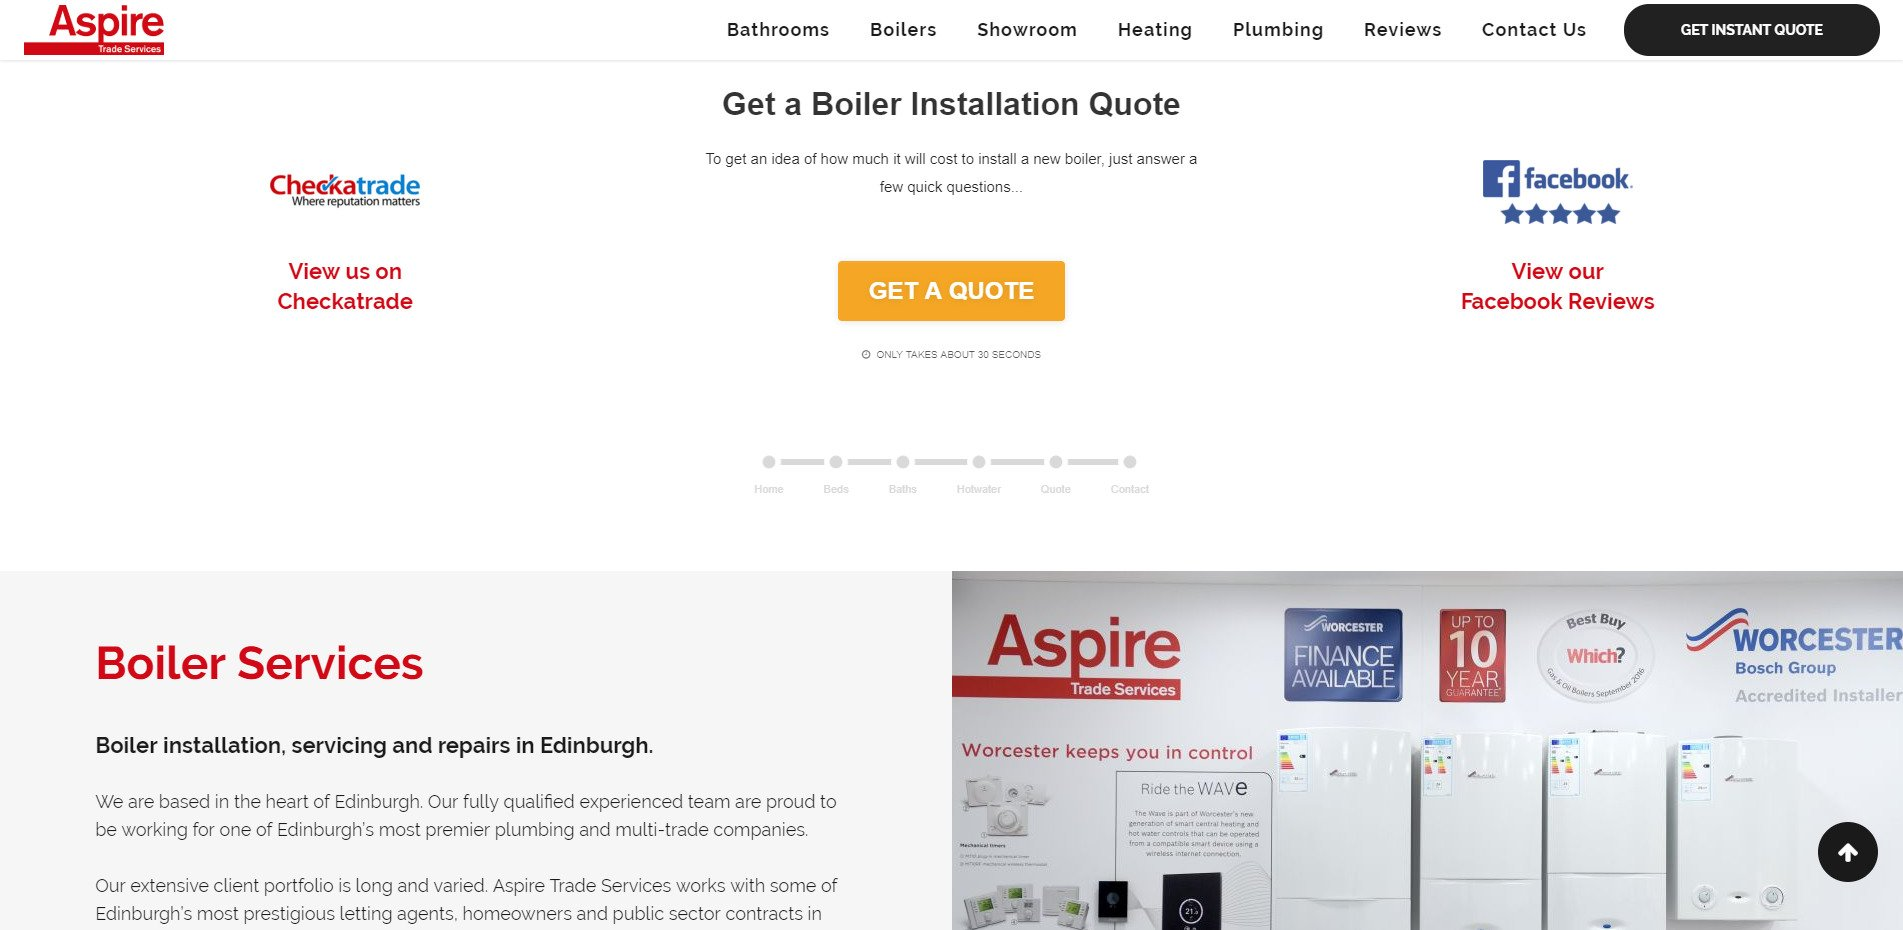 Aspire Homepage Middle Section